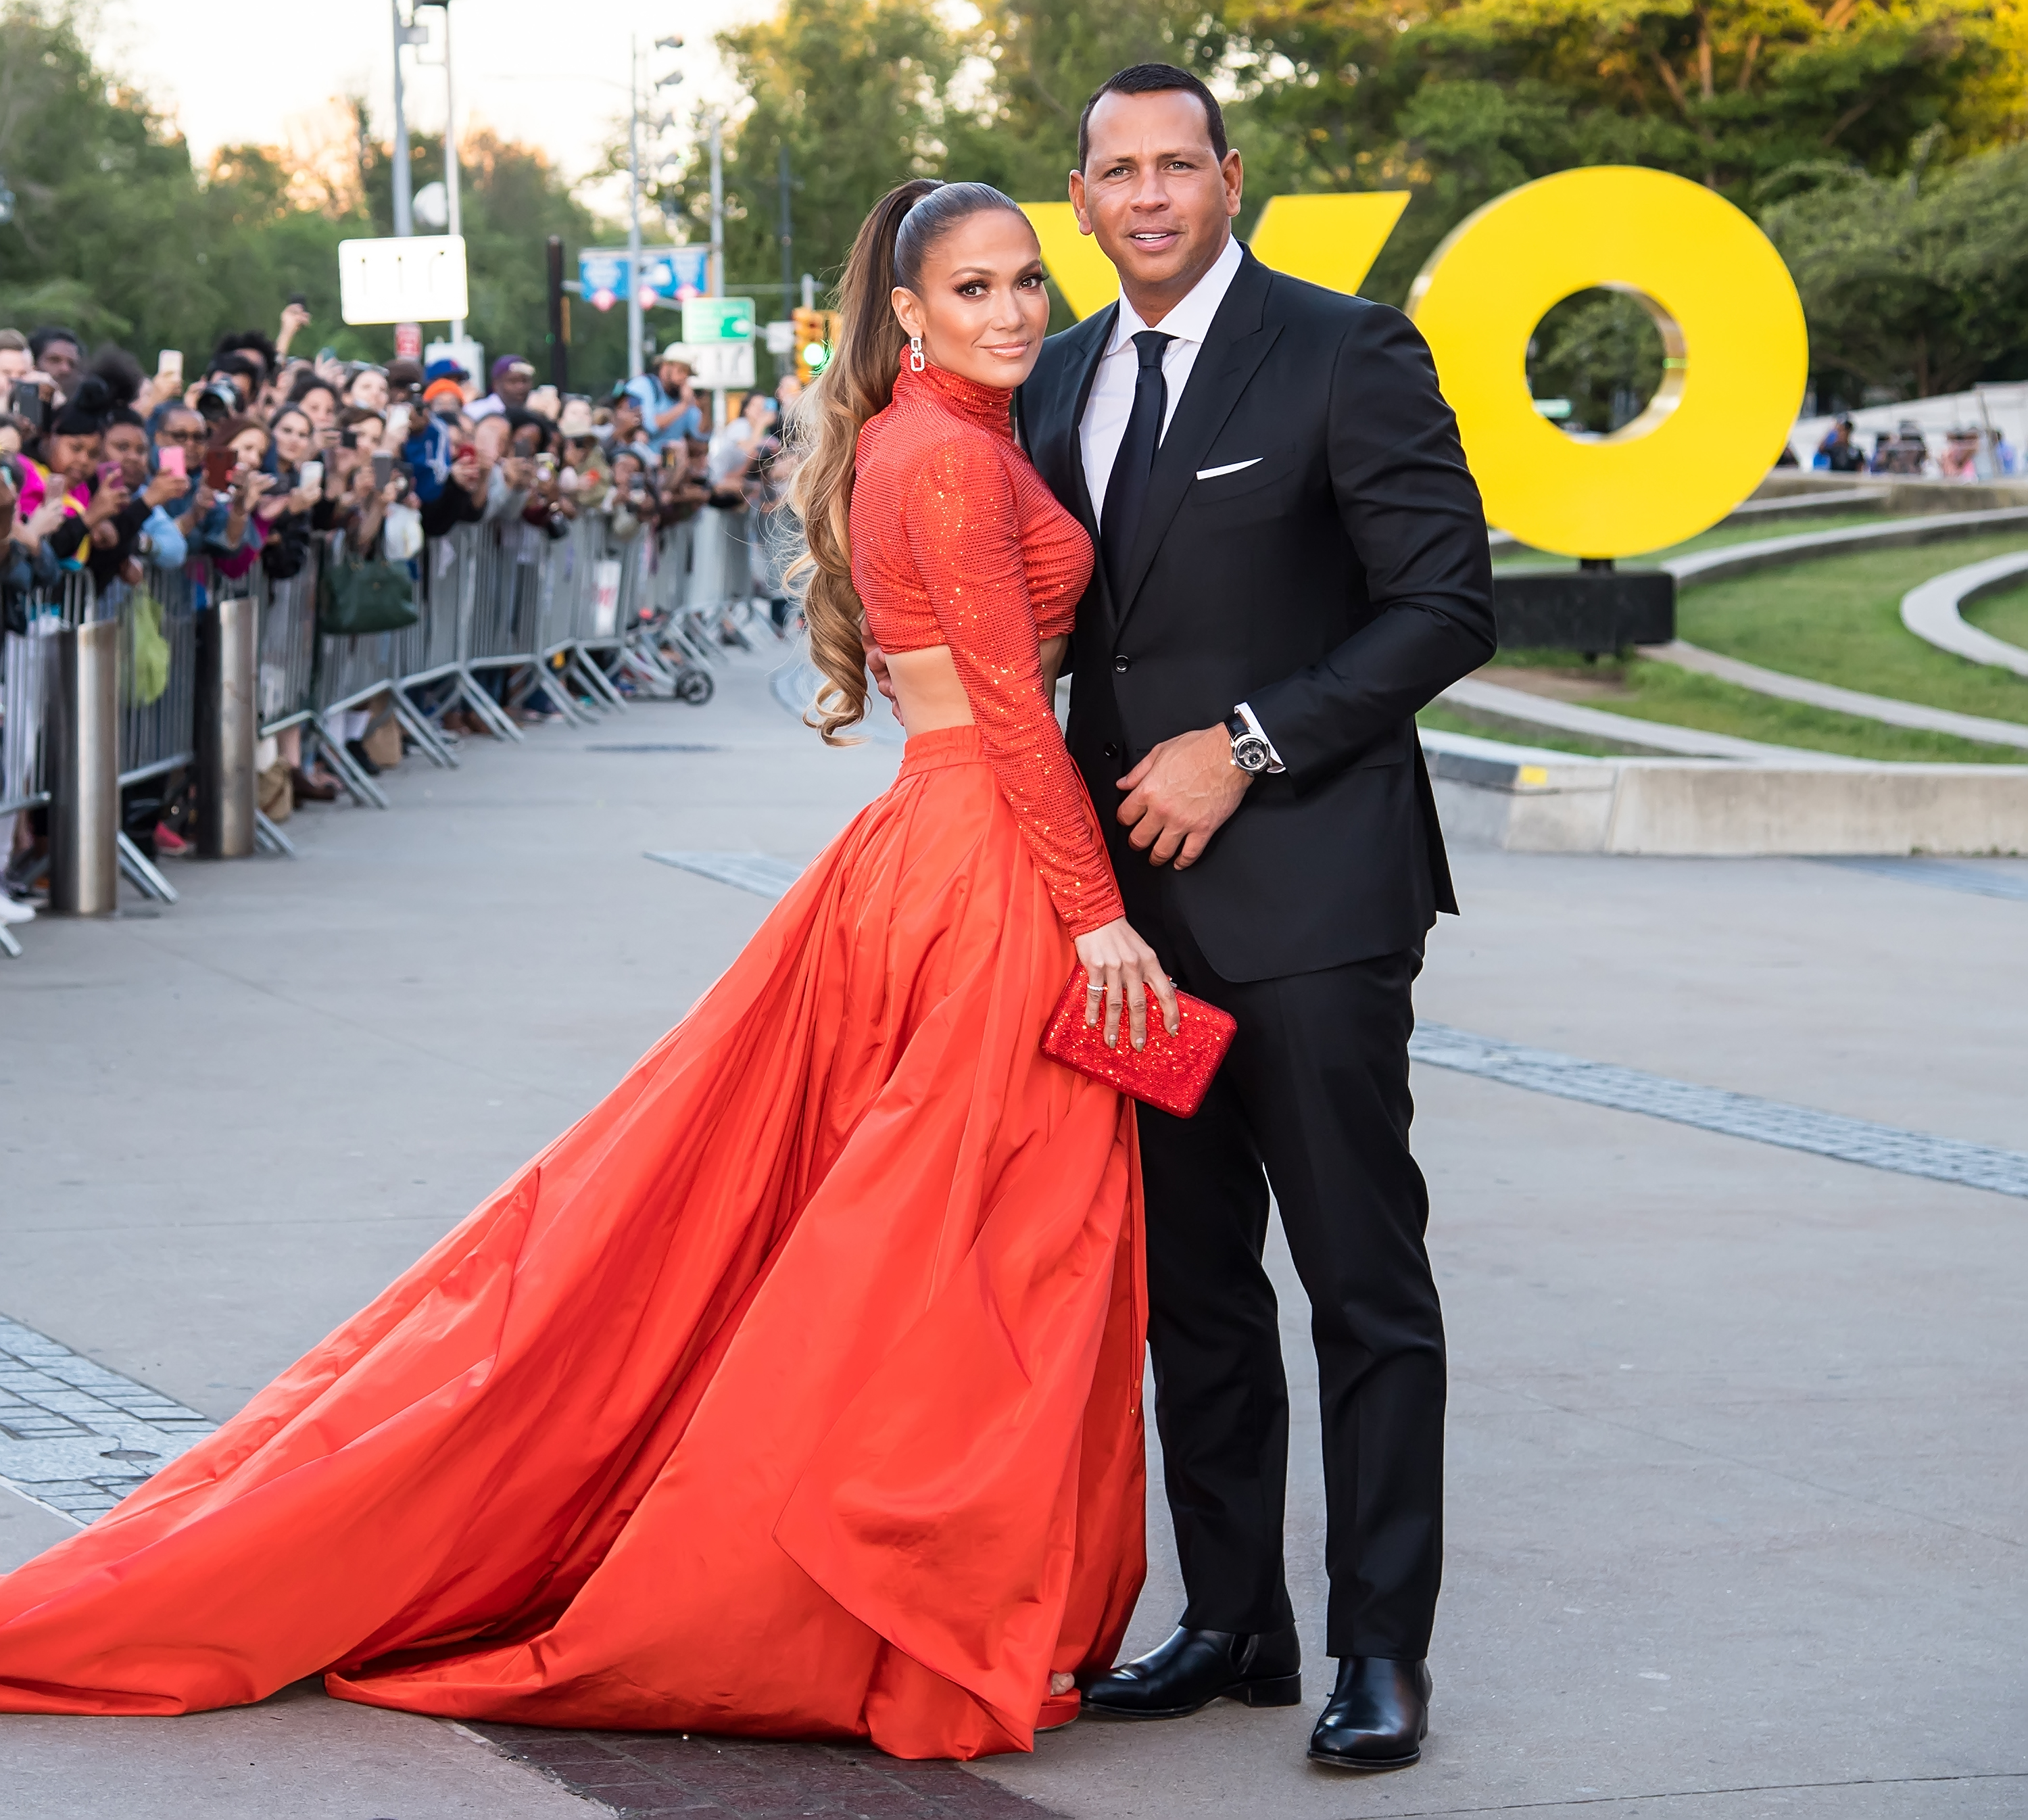 Jennifer Lopez Revealed That She and Alex Rodriguez Want a Big Church Wedding